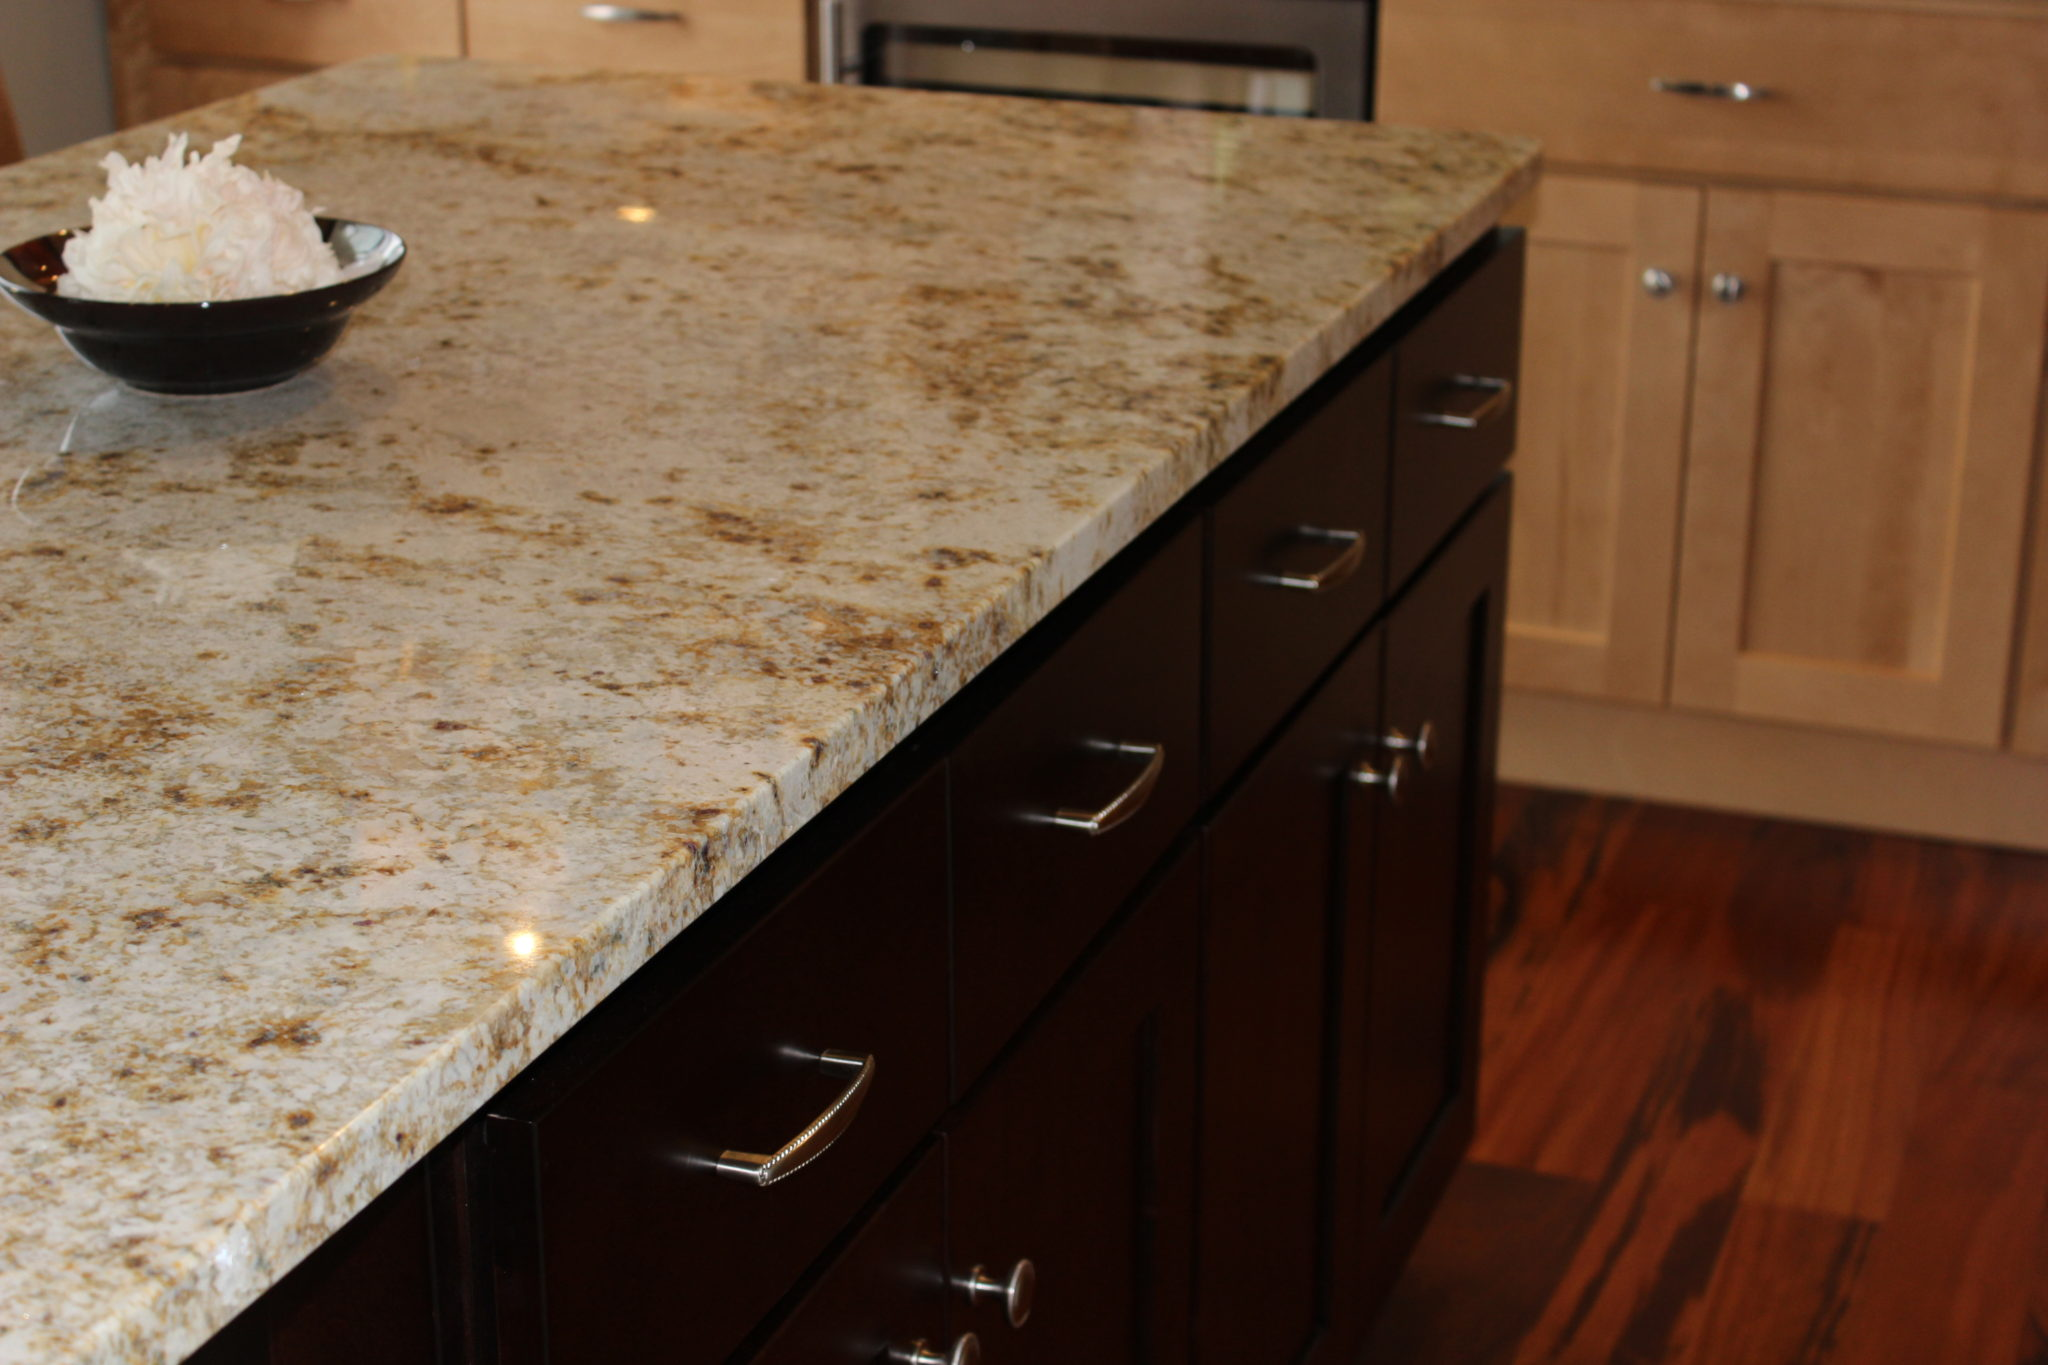 Denver Kitchen Countertops Denver Shower Doors Denver Granite Countertops